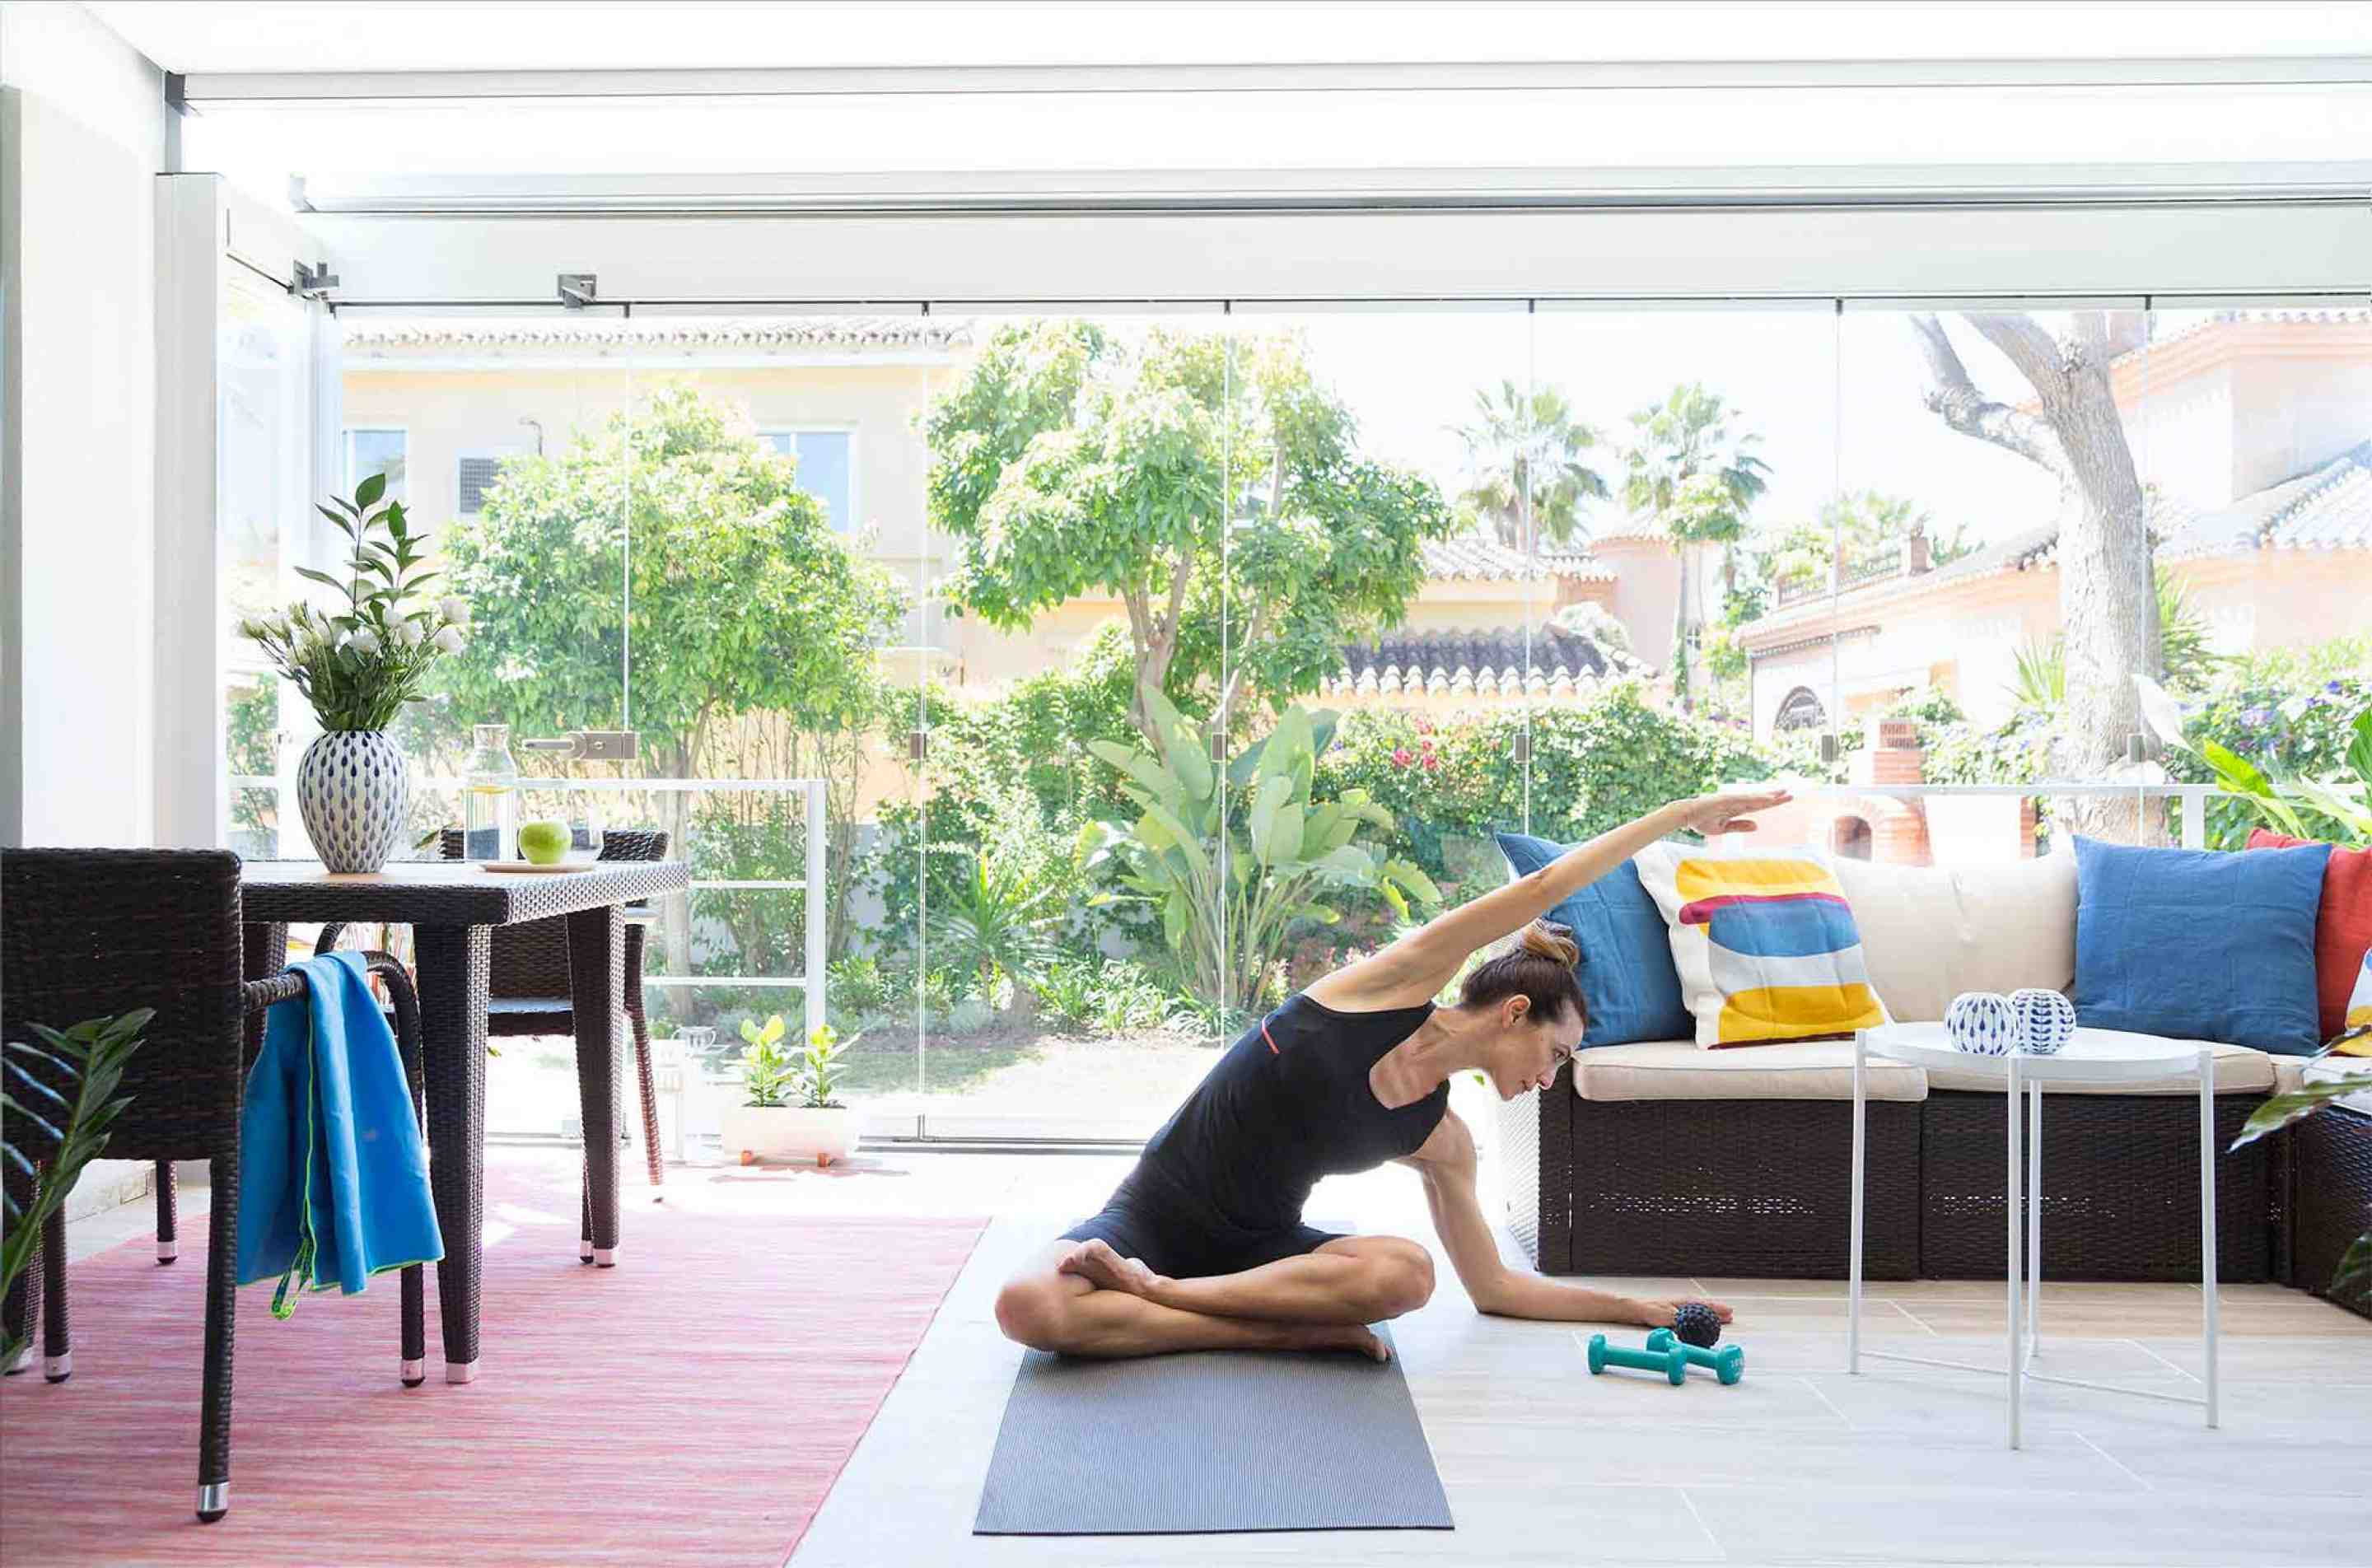 Yoga time on the terrace